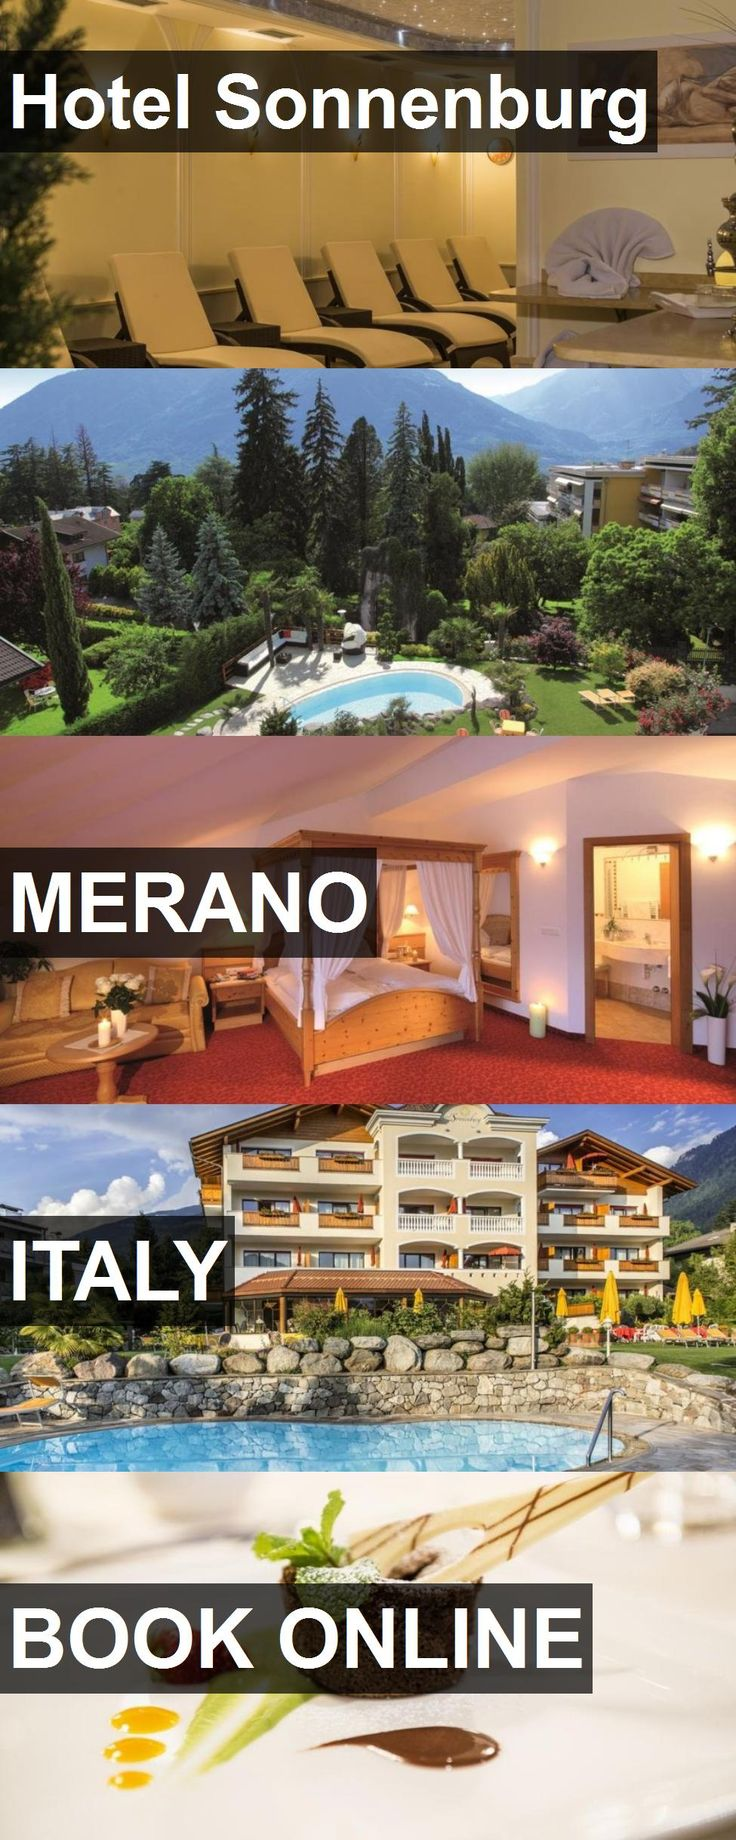 Hotel Sonnenburg in Merano, Italy. For more information, photos, reviews and best prices please follow the link. #Italy #Merano #travel #vacation #hotel